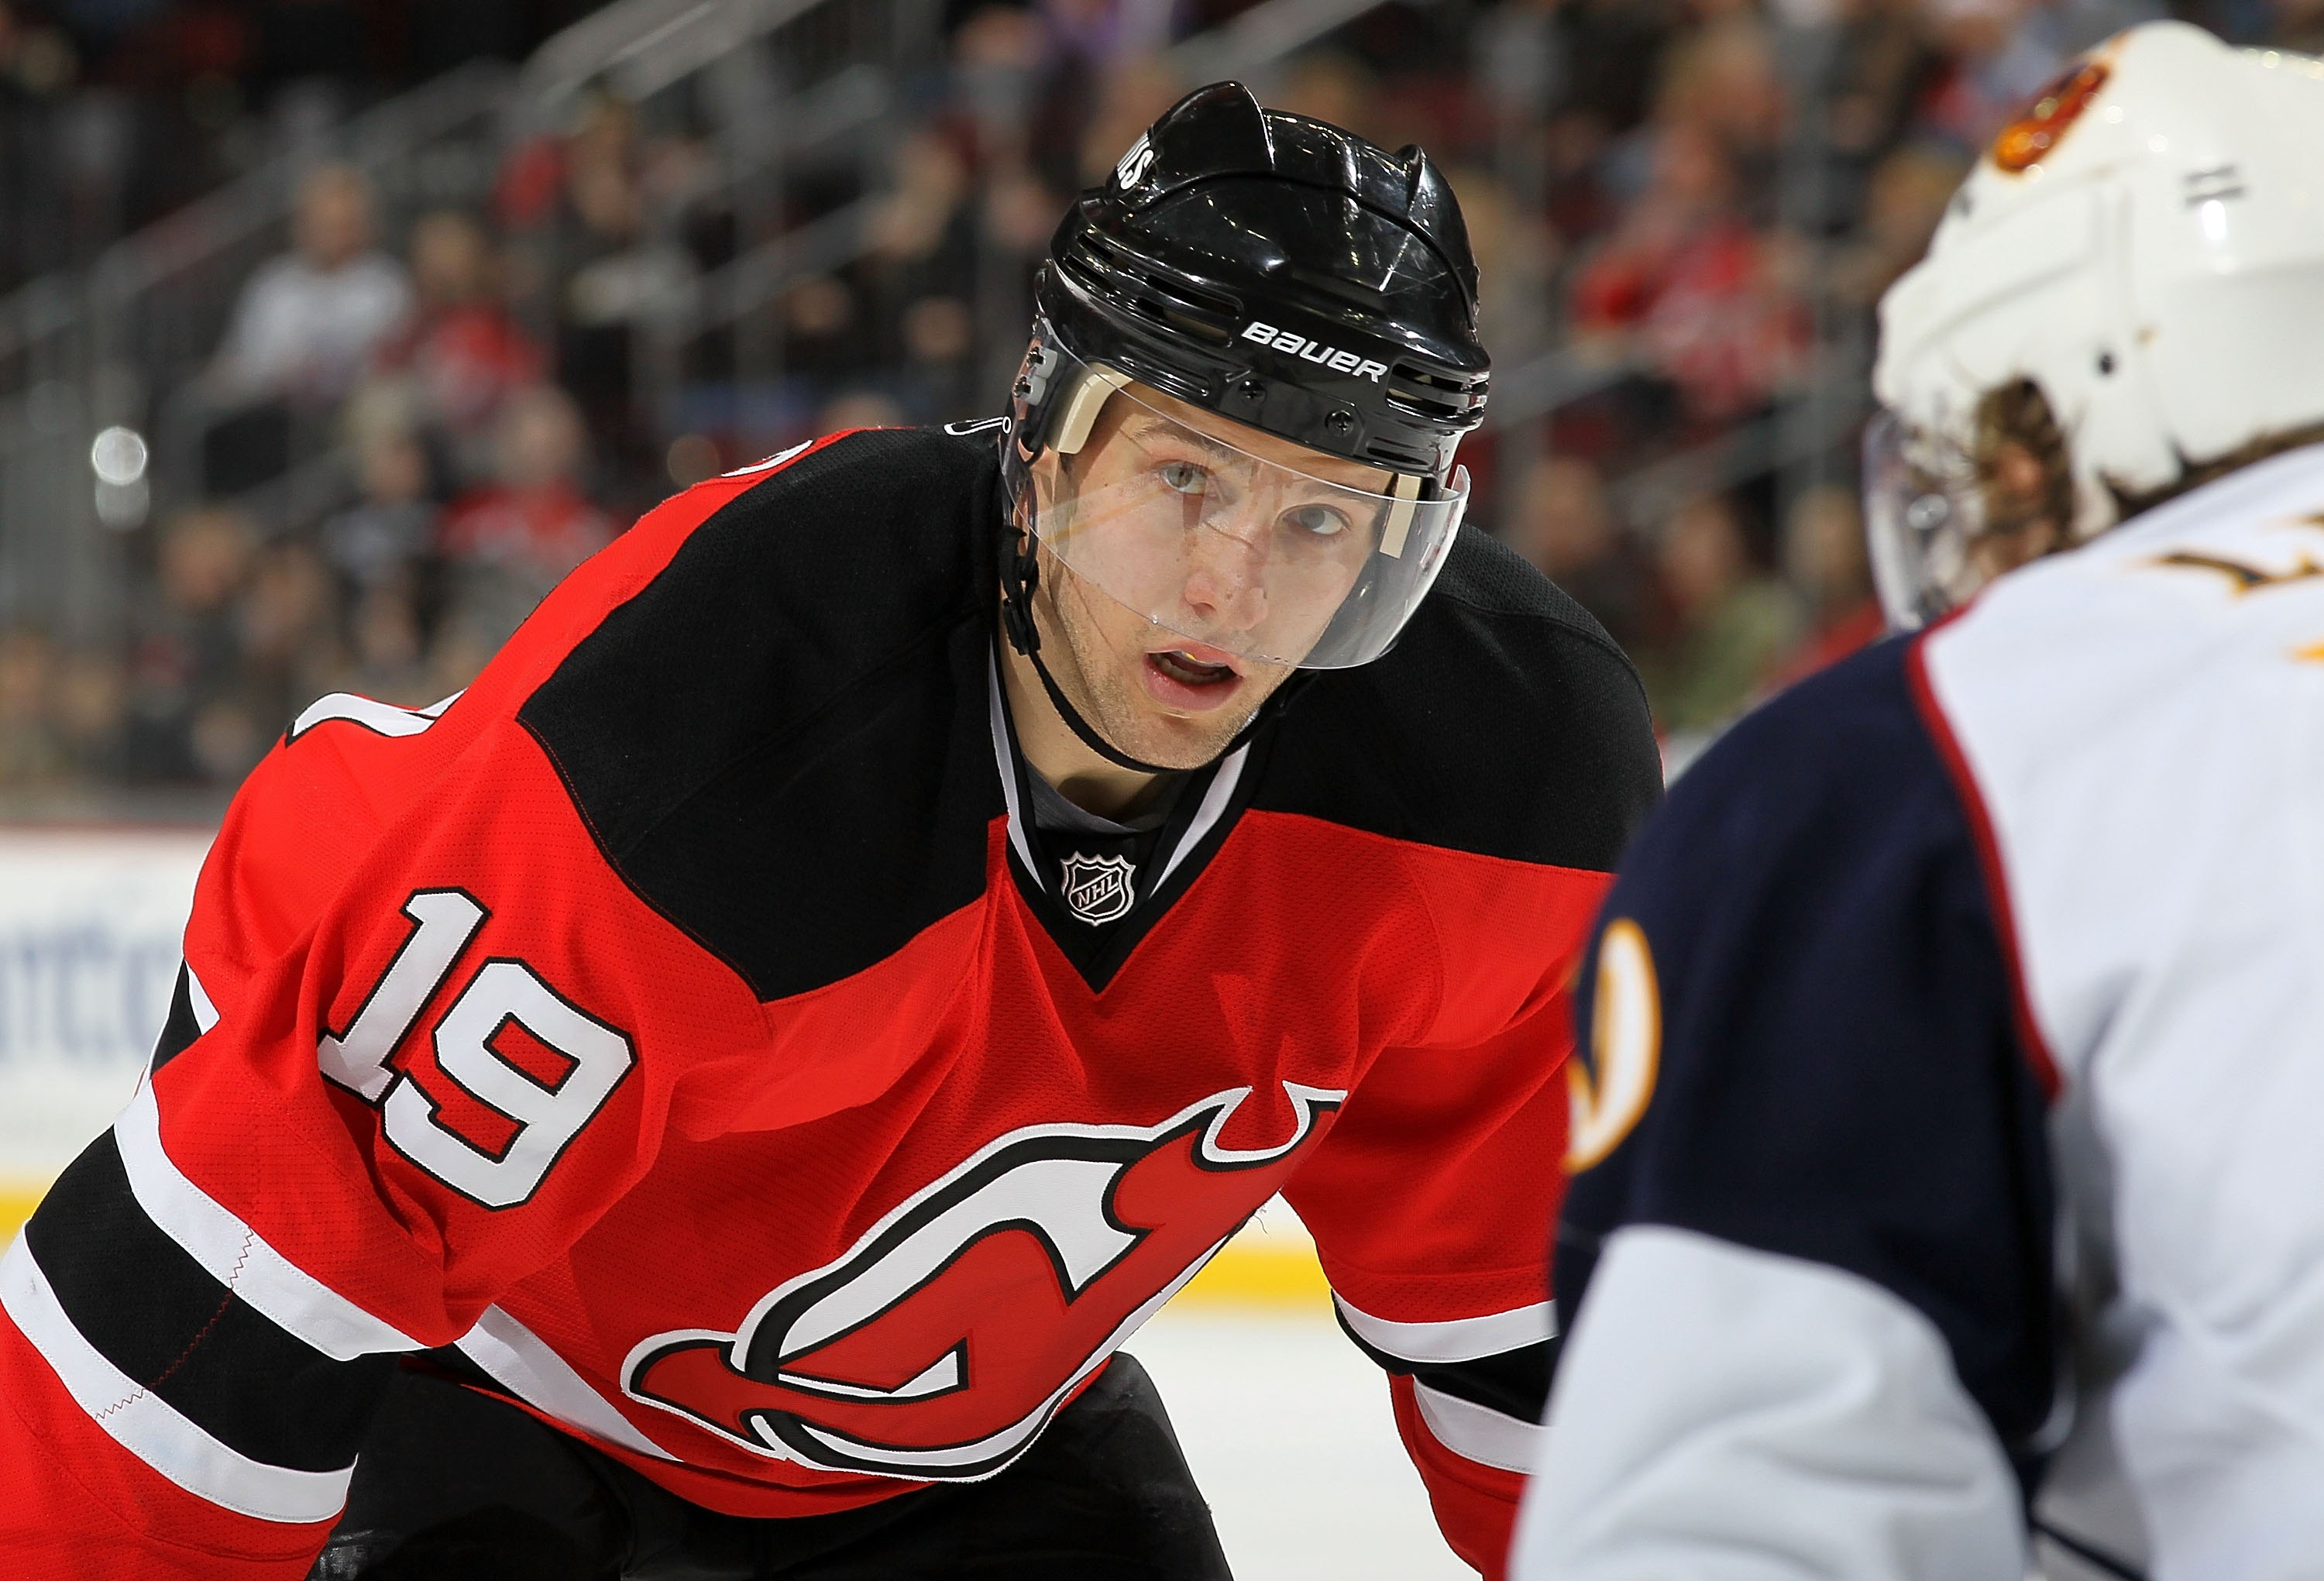 NEWARK, NJ - DECEMBER 31:  Travis Zajac #19 of the New Jersey Devils looks on against the Atlanta Thrashers at the Prudential Center on December 31, 2010 in Newark, New Jersey.  (Photo by Jim McIsaac/Getty Images)